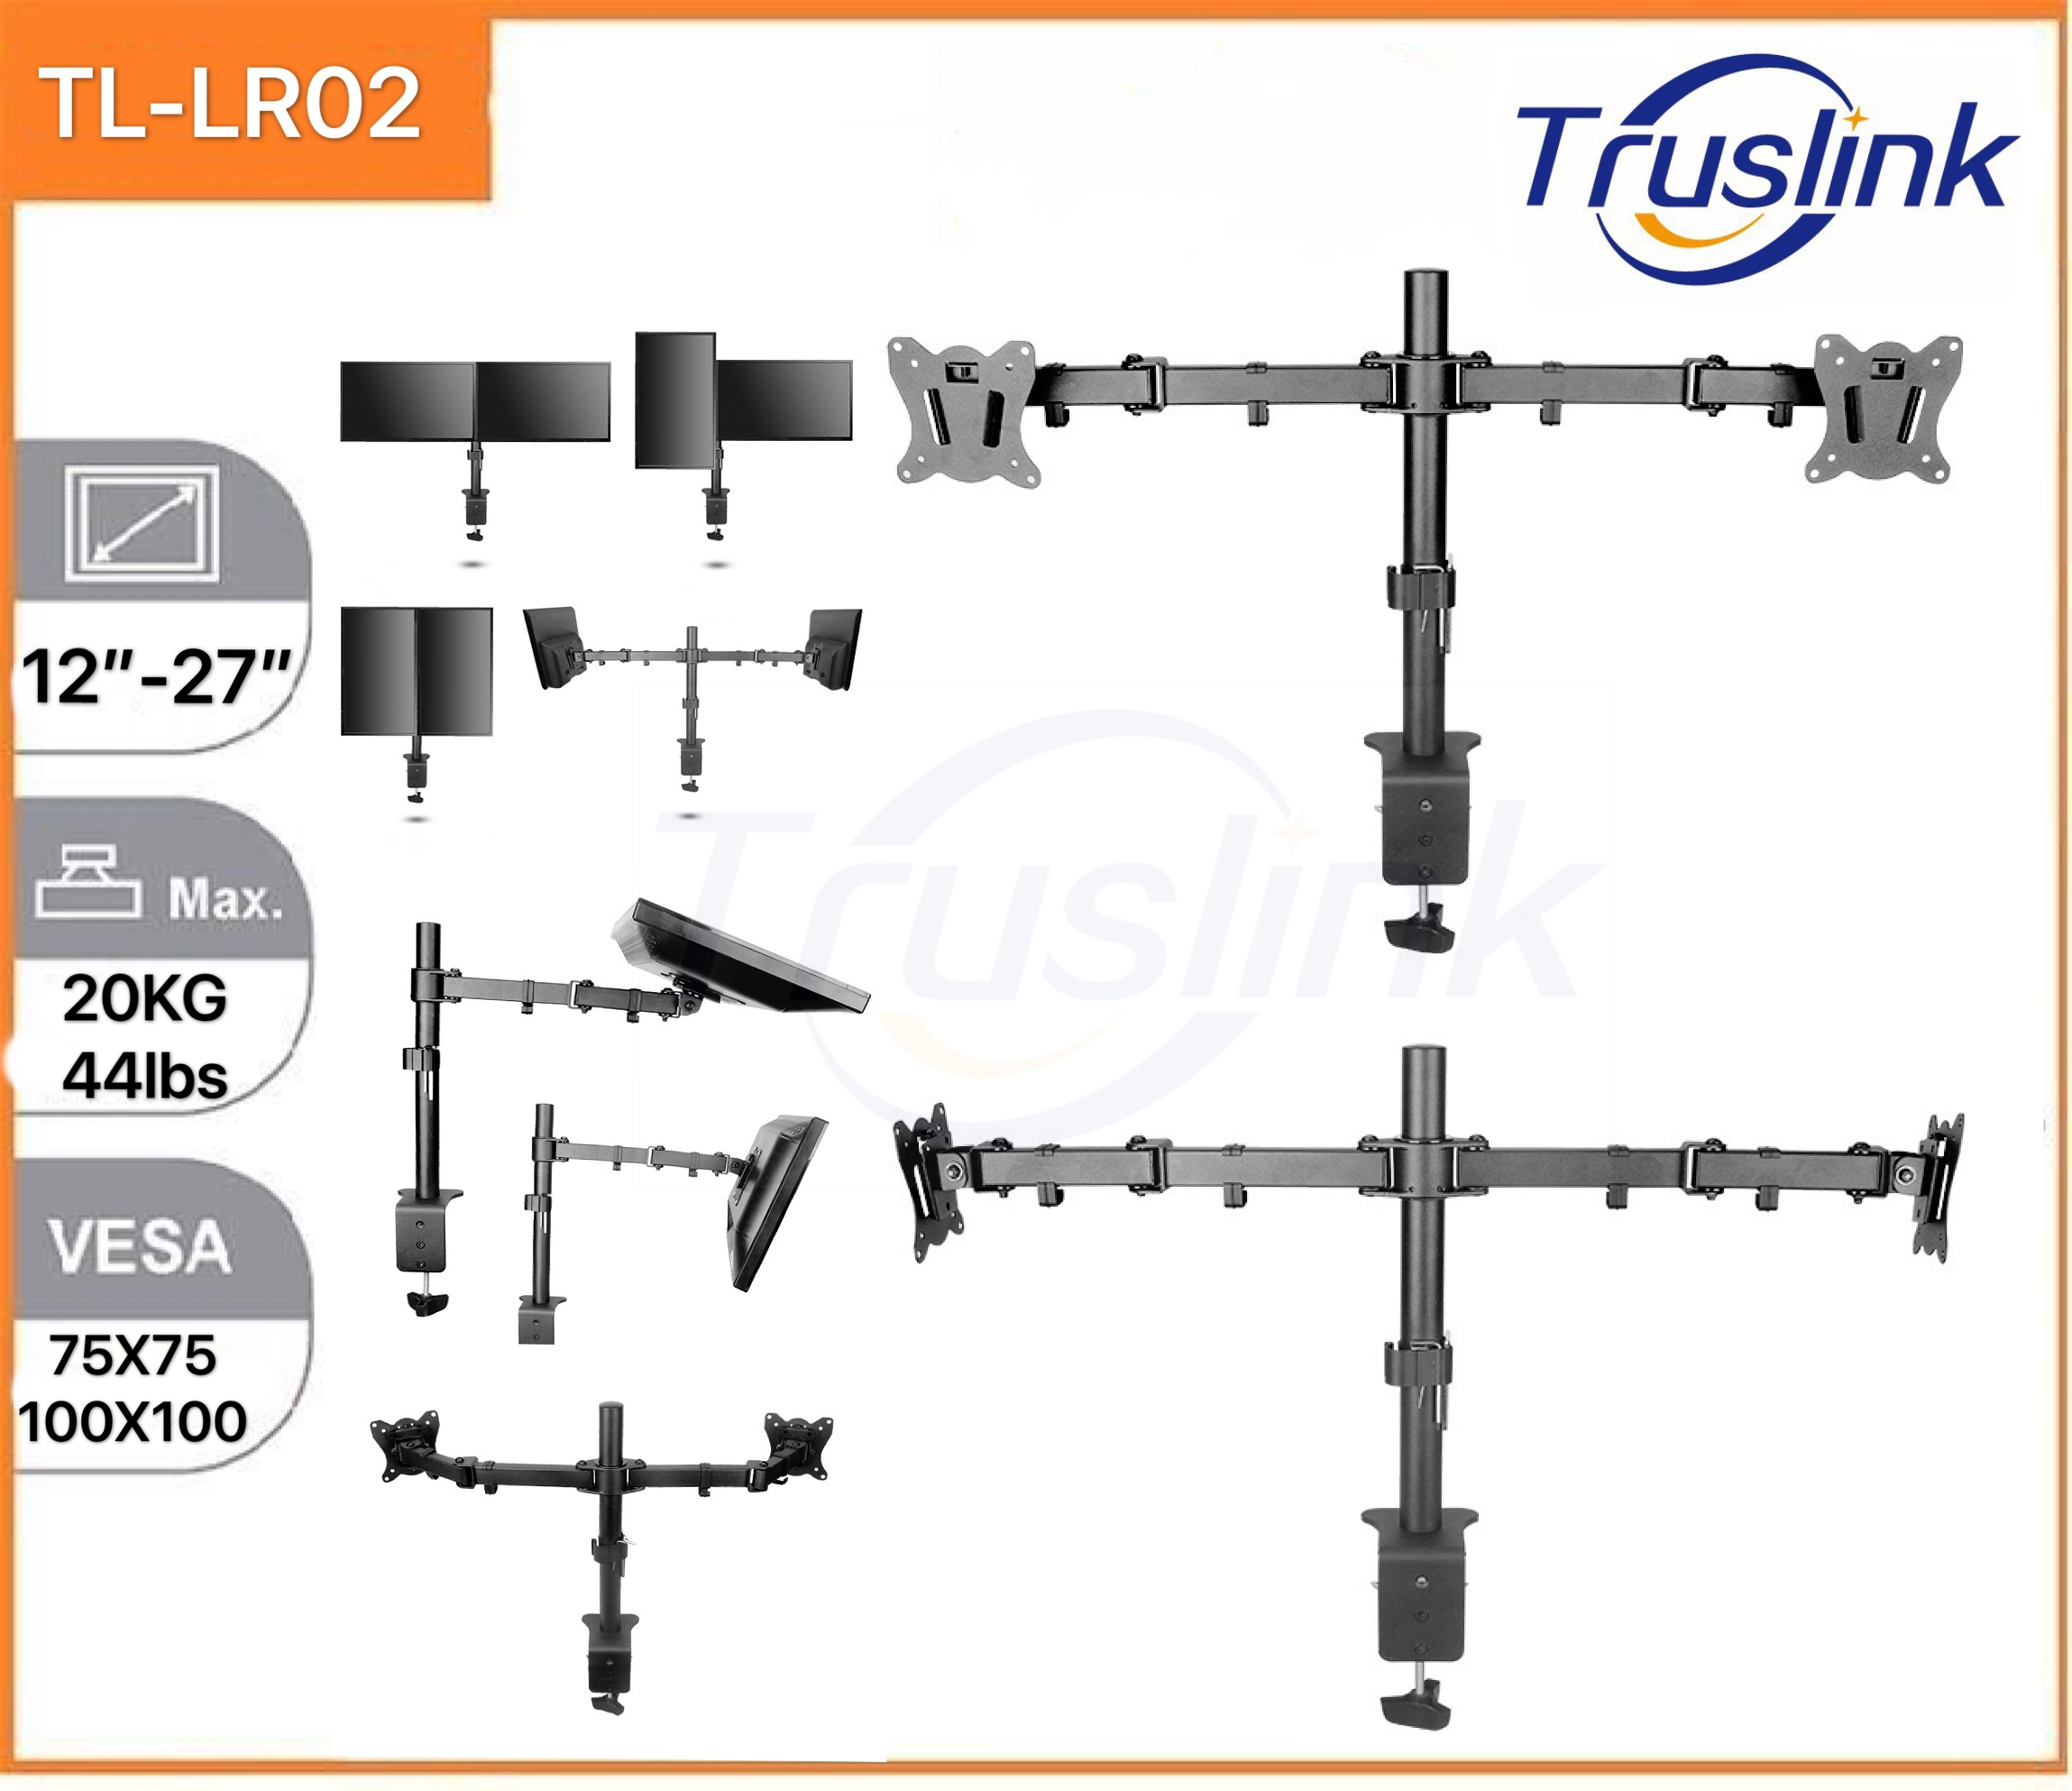 [SG Seller]Truslink Dual Monitor Desk Stand Table Clip Height Adjustable Full Motion Two Arm Monitor Mount for Two 12 to 27 inch LCD LED Screens with Swivel and Tilt, 10KG Per Arm Up Down Tilt 100° Adjustment